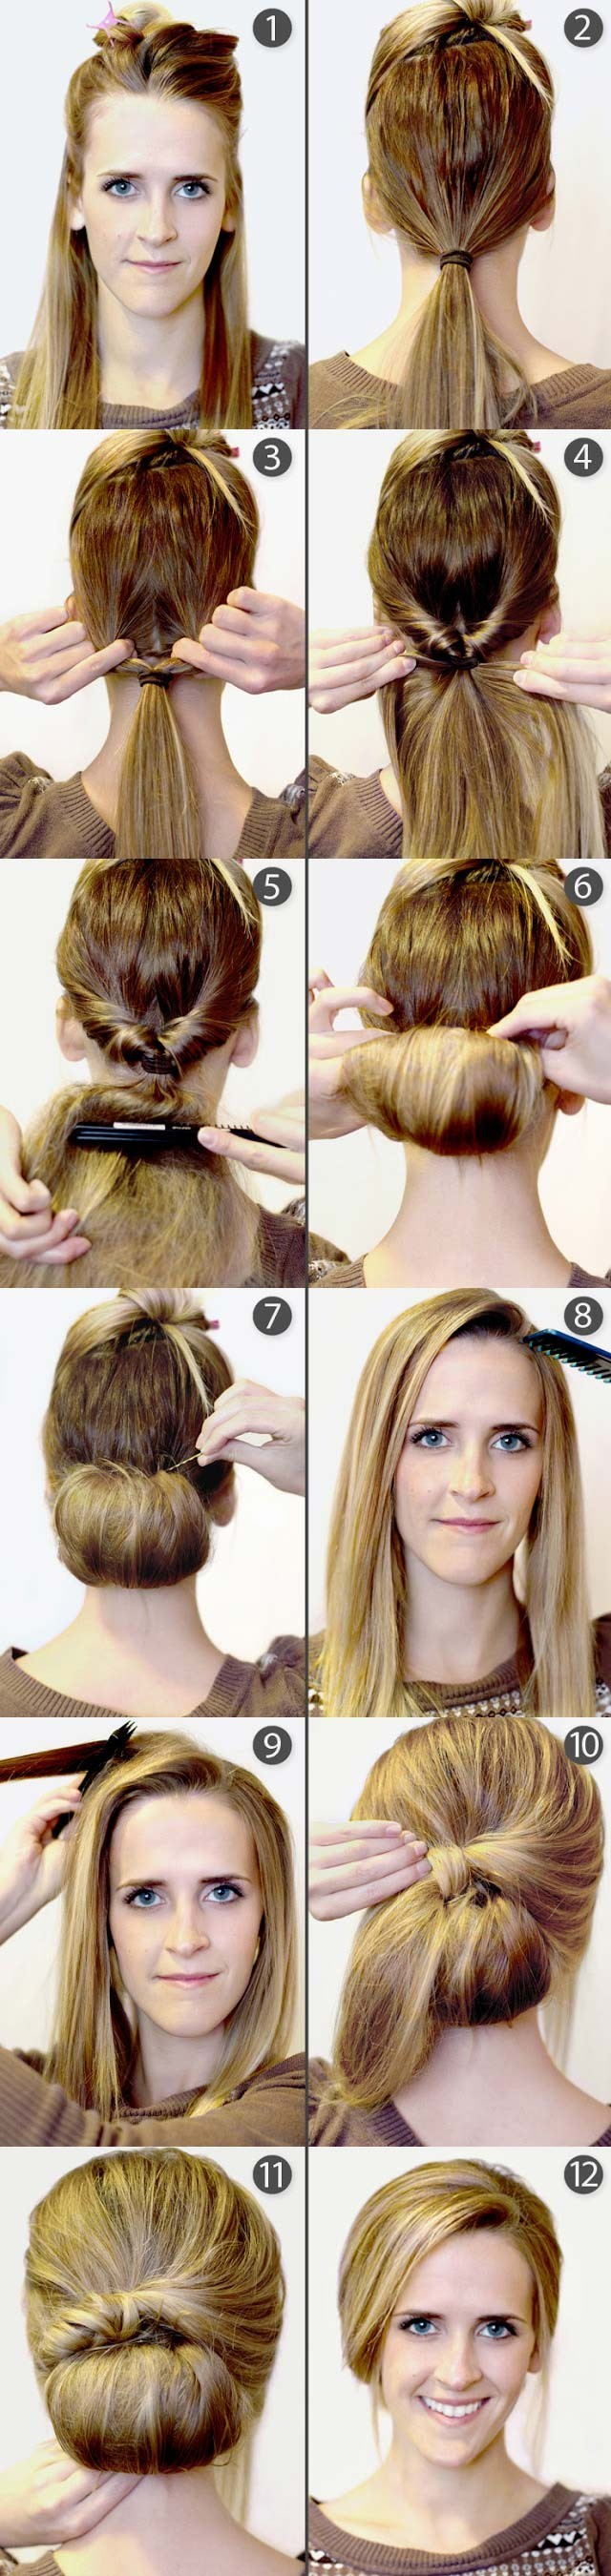 Remarkable 15 Cute Hairstyles Step By Step Hairstyles For Long Hair Short Hairstyles For Black Women Fulllsitofus